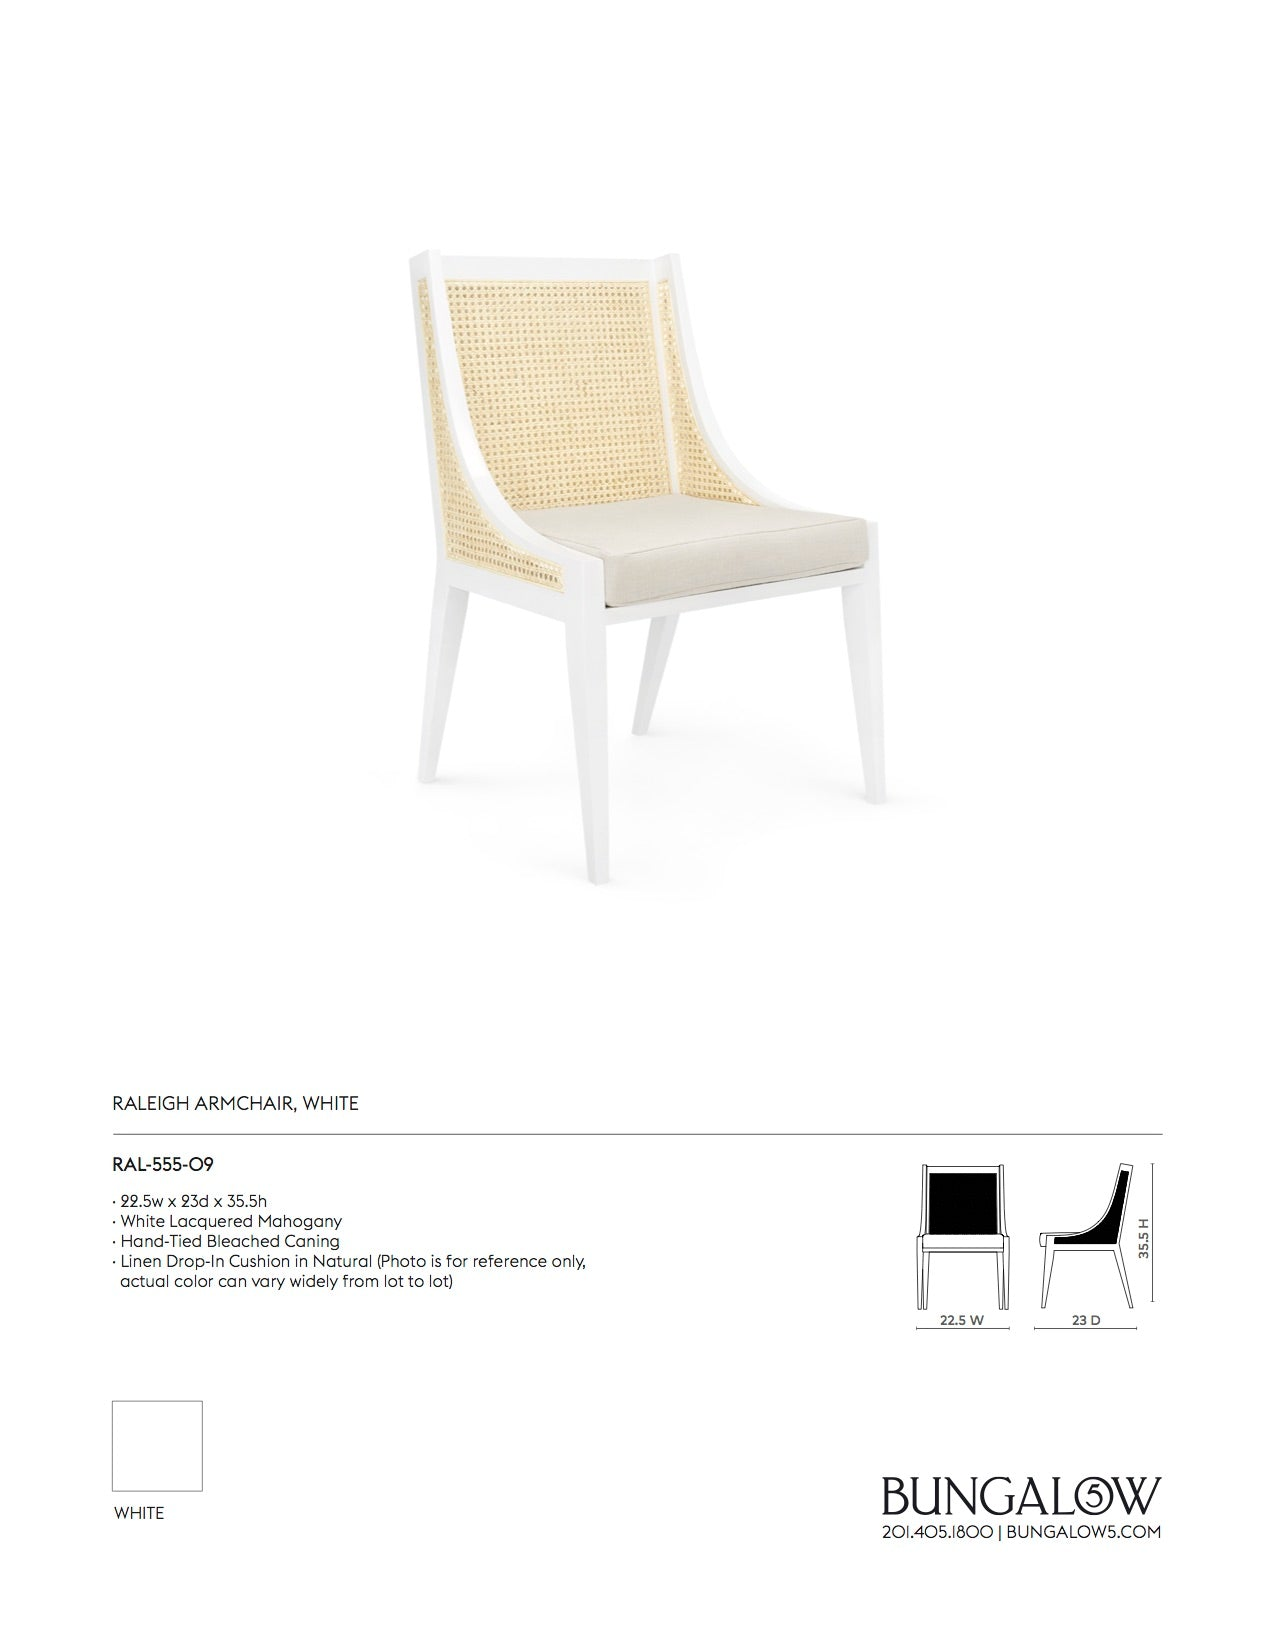 Bungalow 5 Raleigh Armchair White Tearsheet